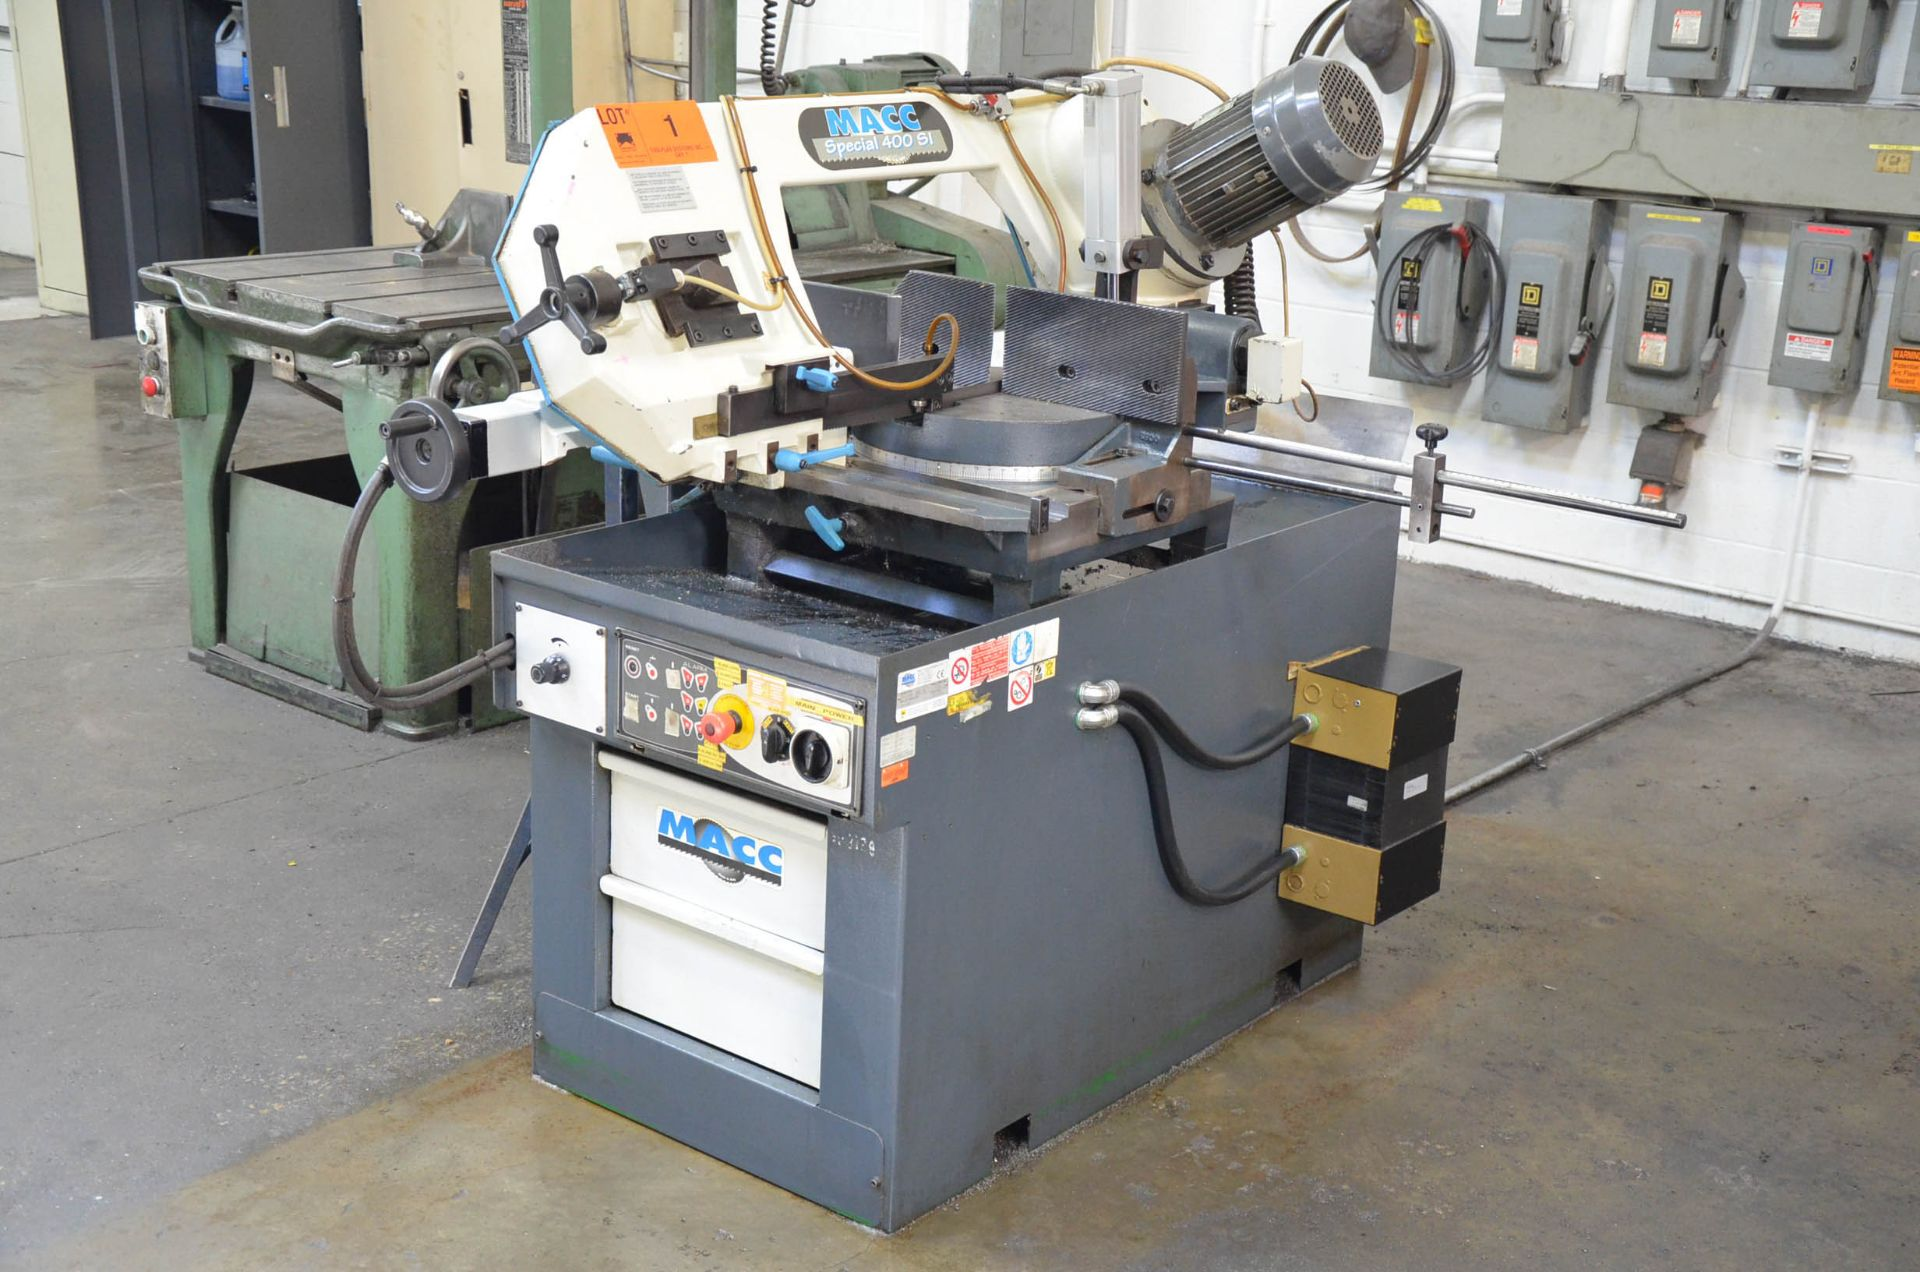 """MACC (2008) SPECIAL 400 SI 16"""" METAL CUTTING HORIZONTAL BAND SAW WITH MITER CAPABILITY, COOLANT, - Image 2 of 6"""